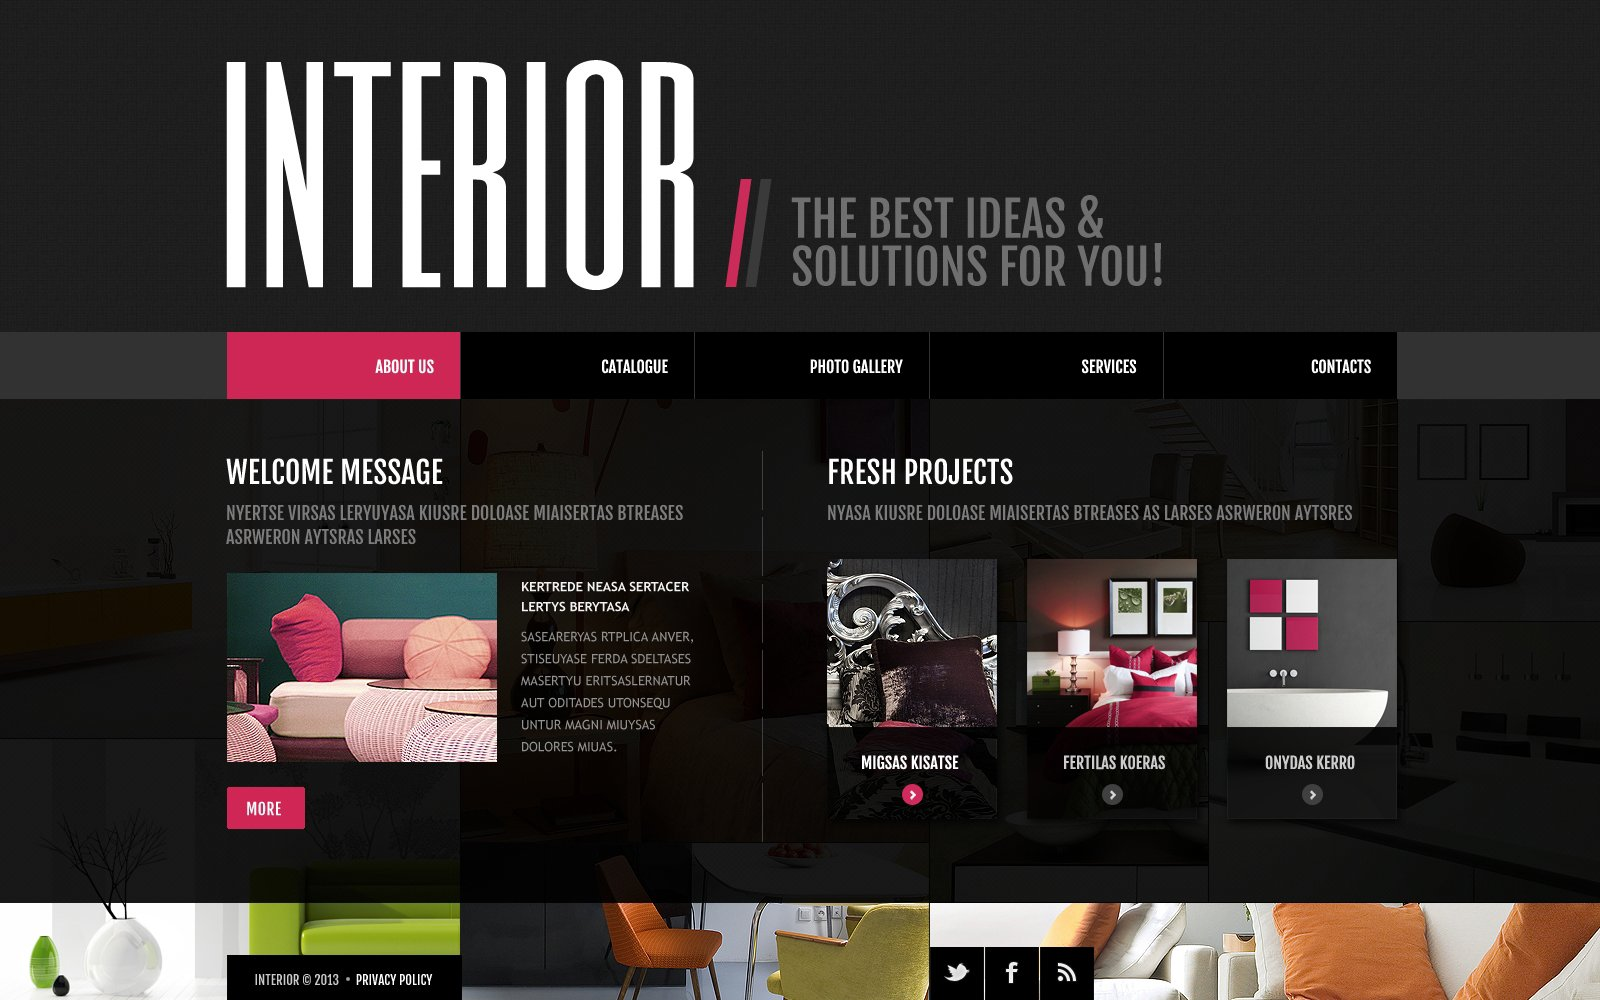 Interior design website template 45410 for Interior decorating ideas websites